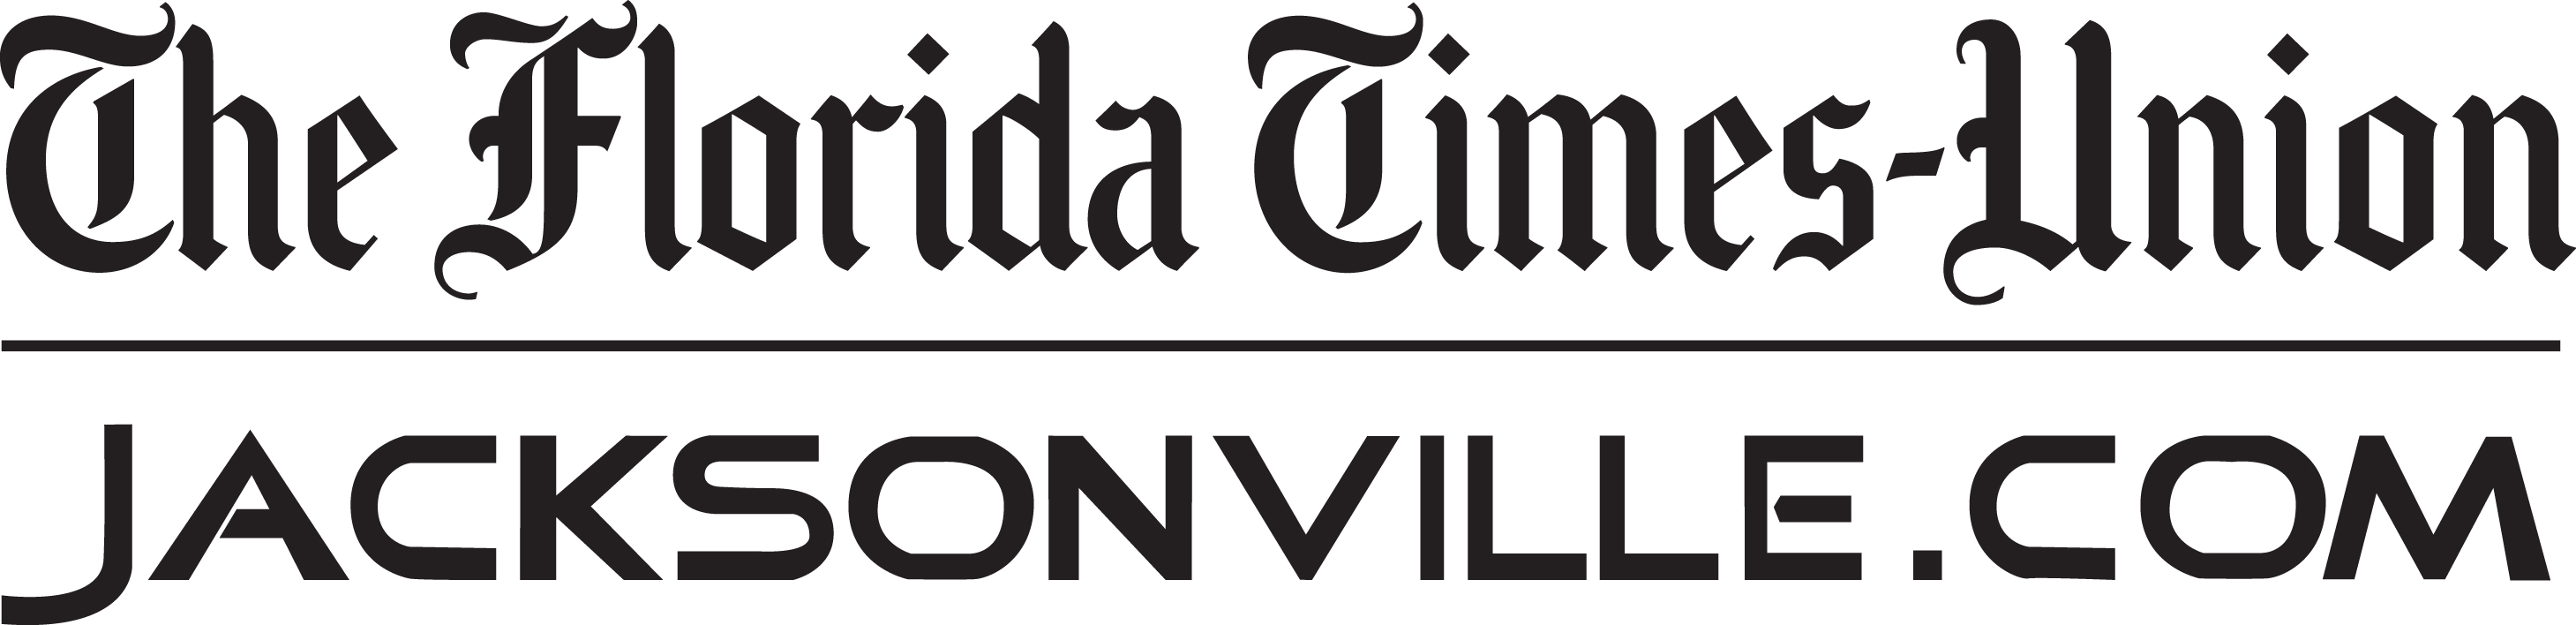 The Florida Times-Union